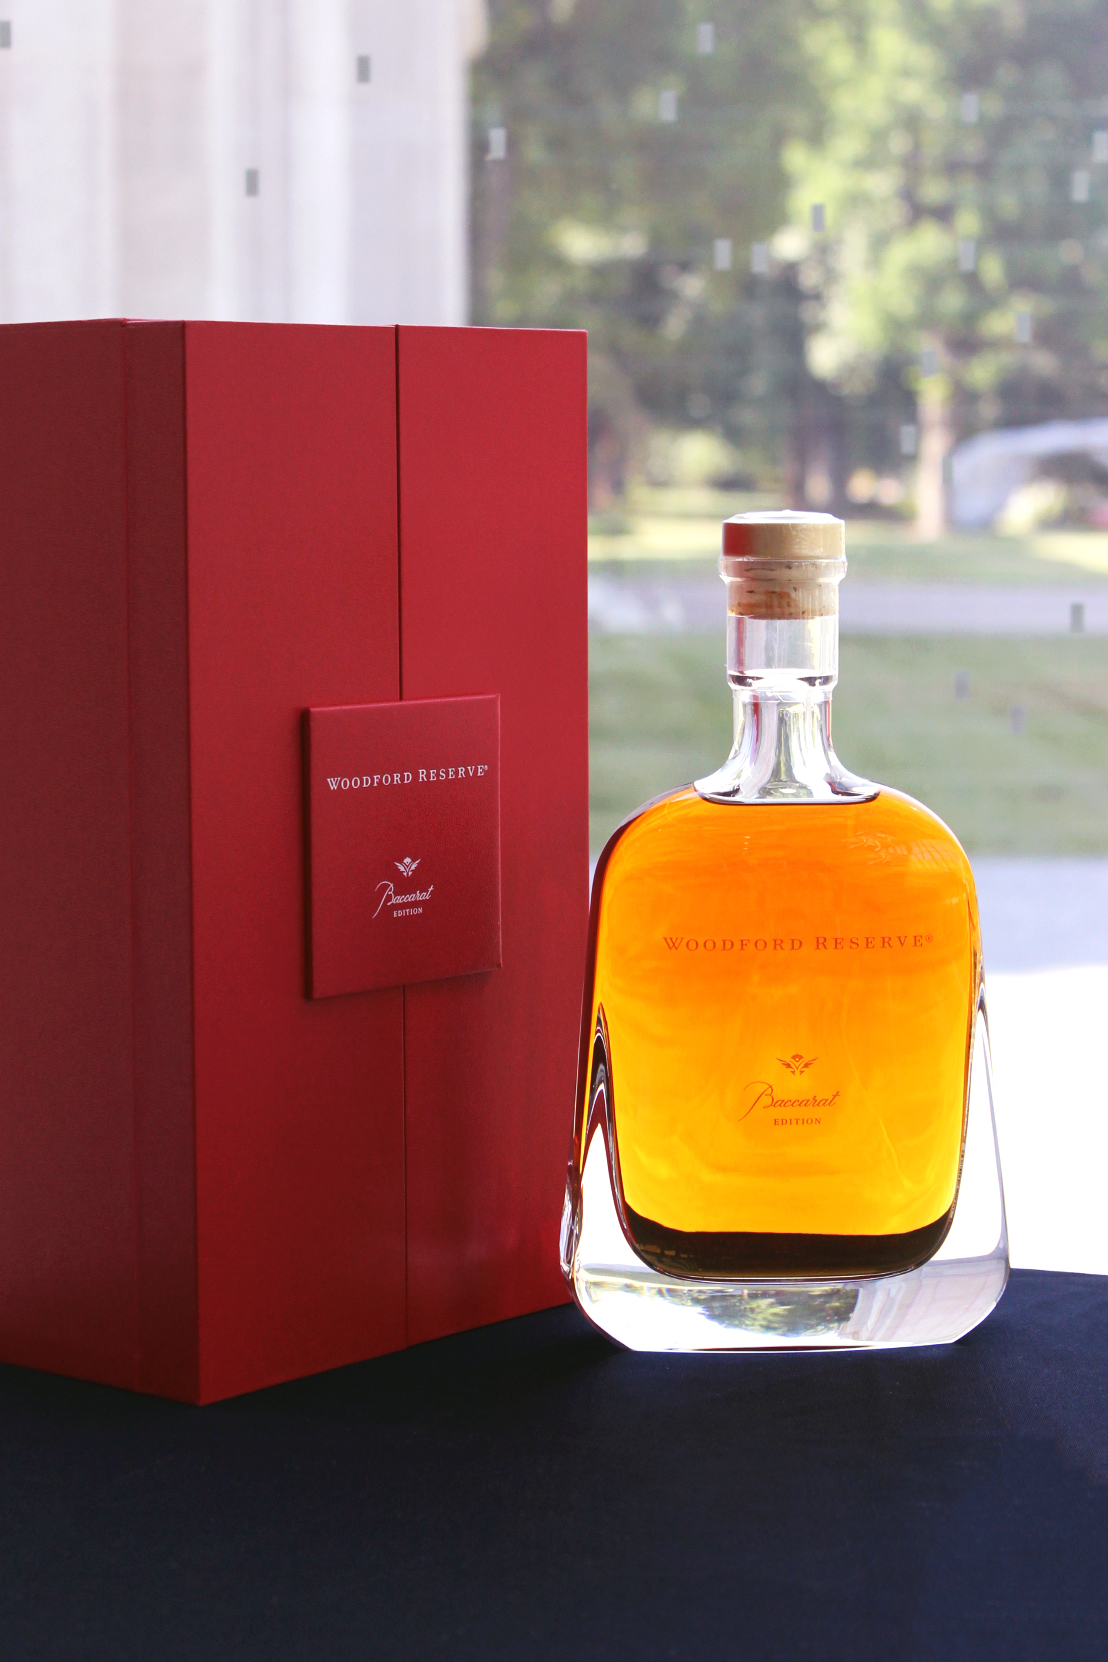 Woodford Reserve Baccarat with box